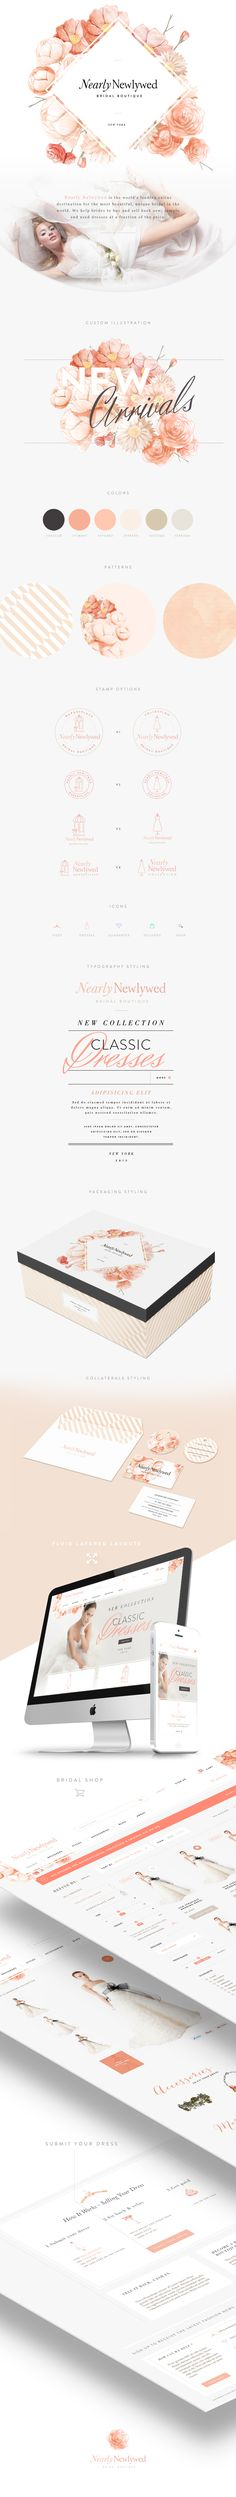 Nearly Newlywed Brand Identity by FloSites Creative Agency (California)